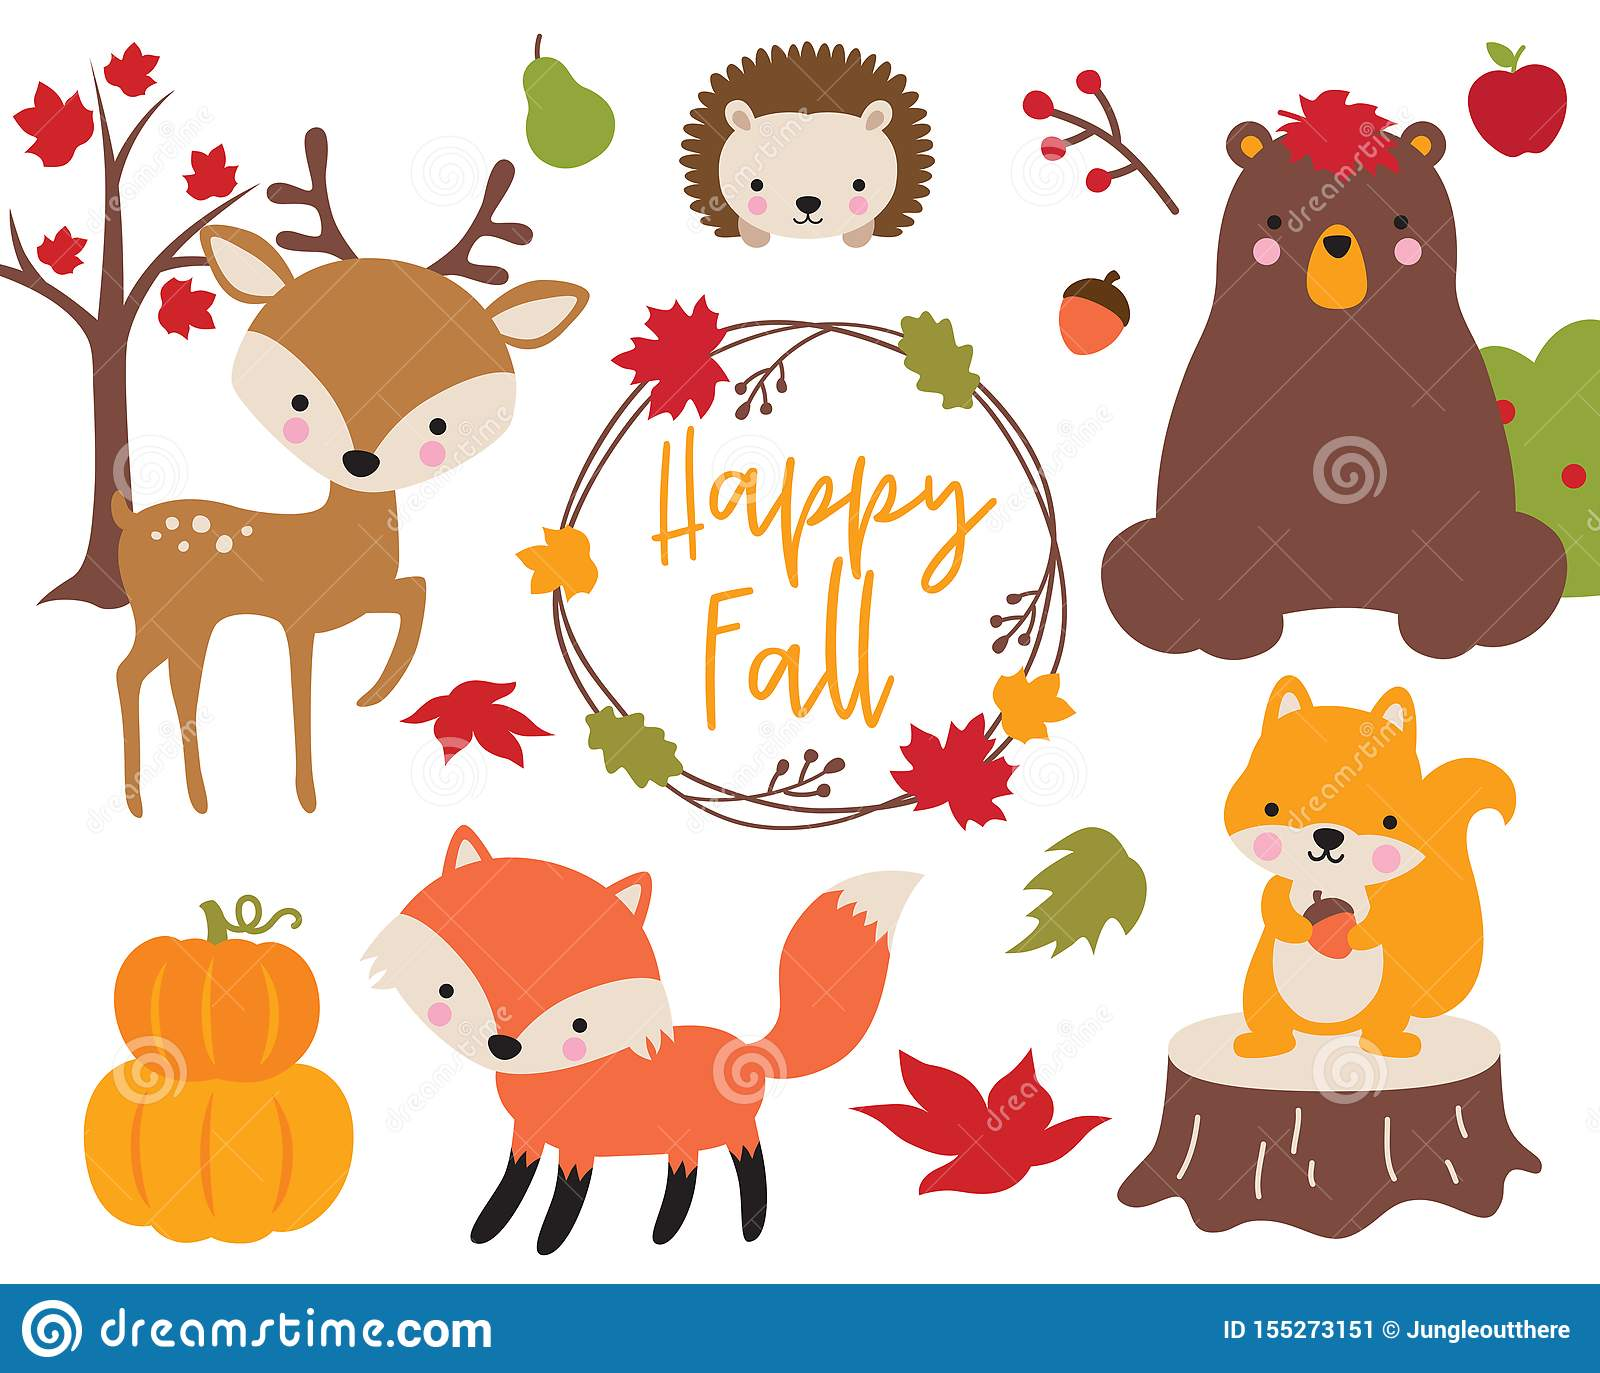 Cute Fall Autumn Woodland Animals Stock Vector Illustration Of Character Deer 155273151